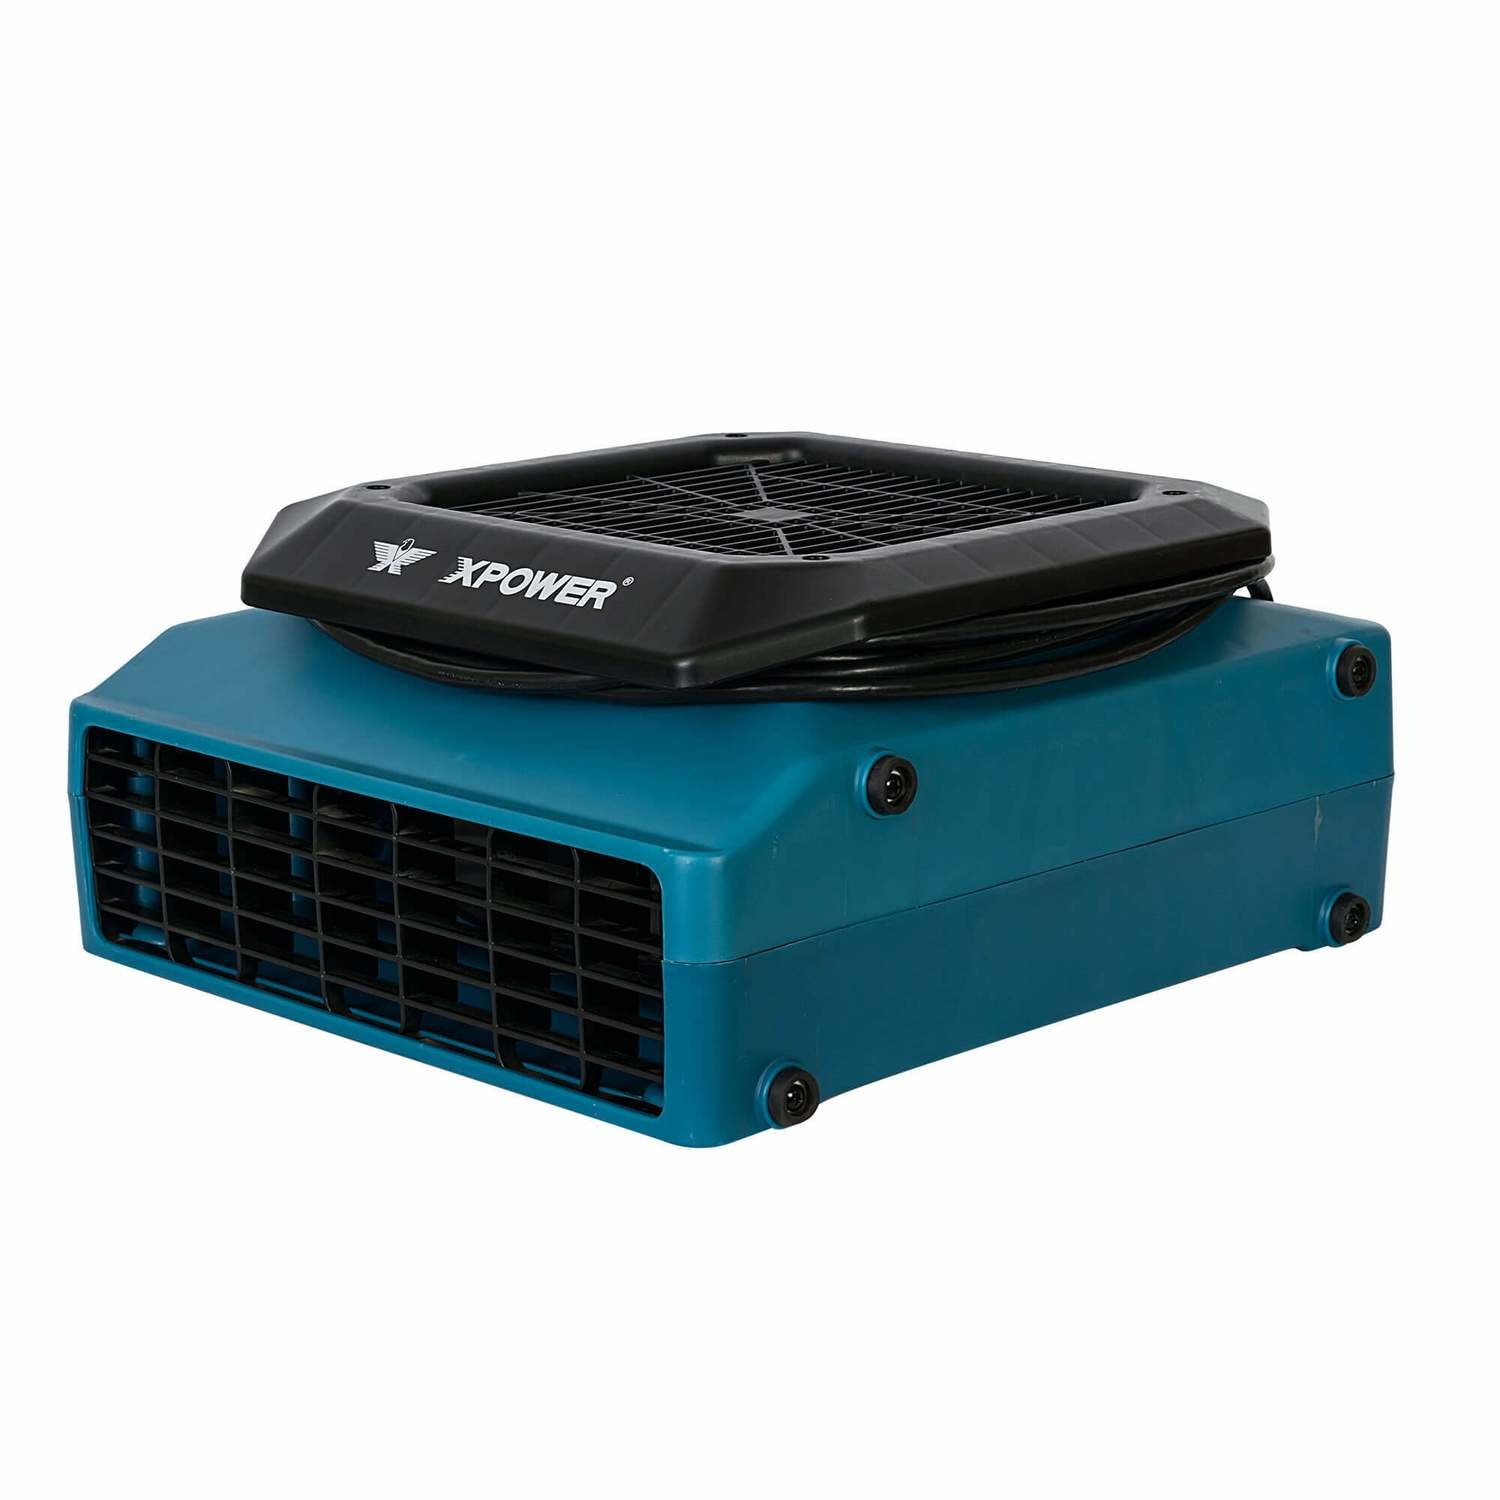 XPOWER XL-730A Professional Low Profile Air Mover (1/3 HP)